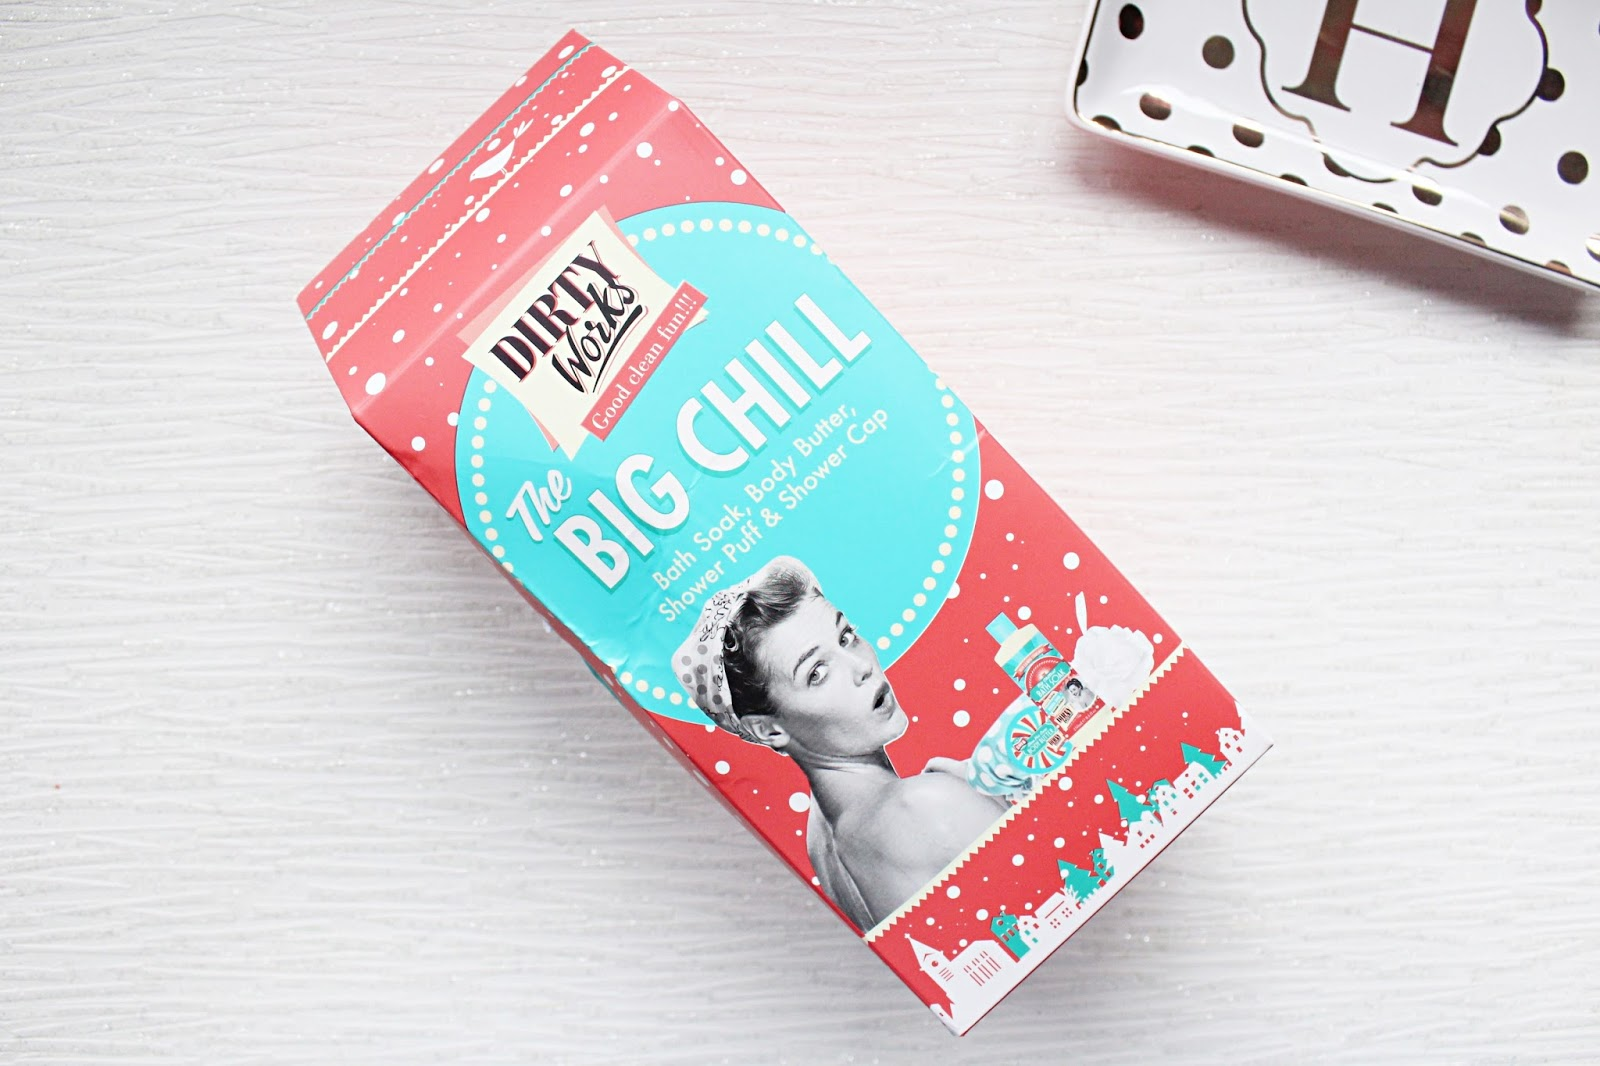 Dirty Works The Big Chill Gift Set